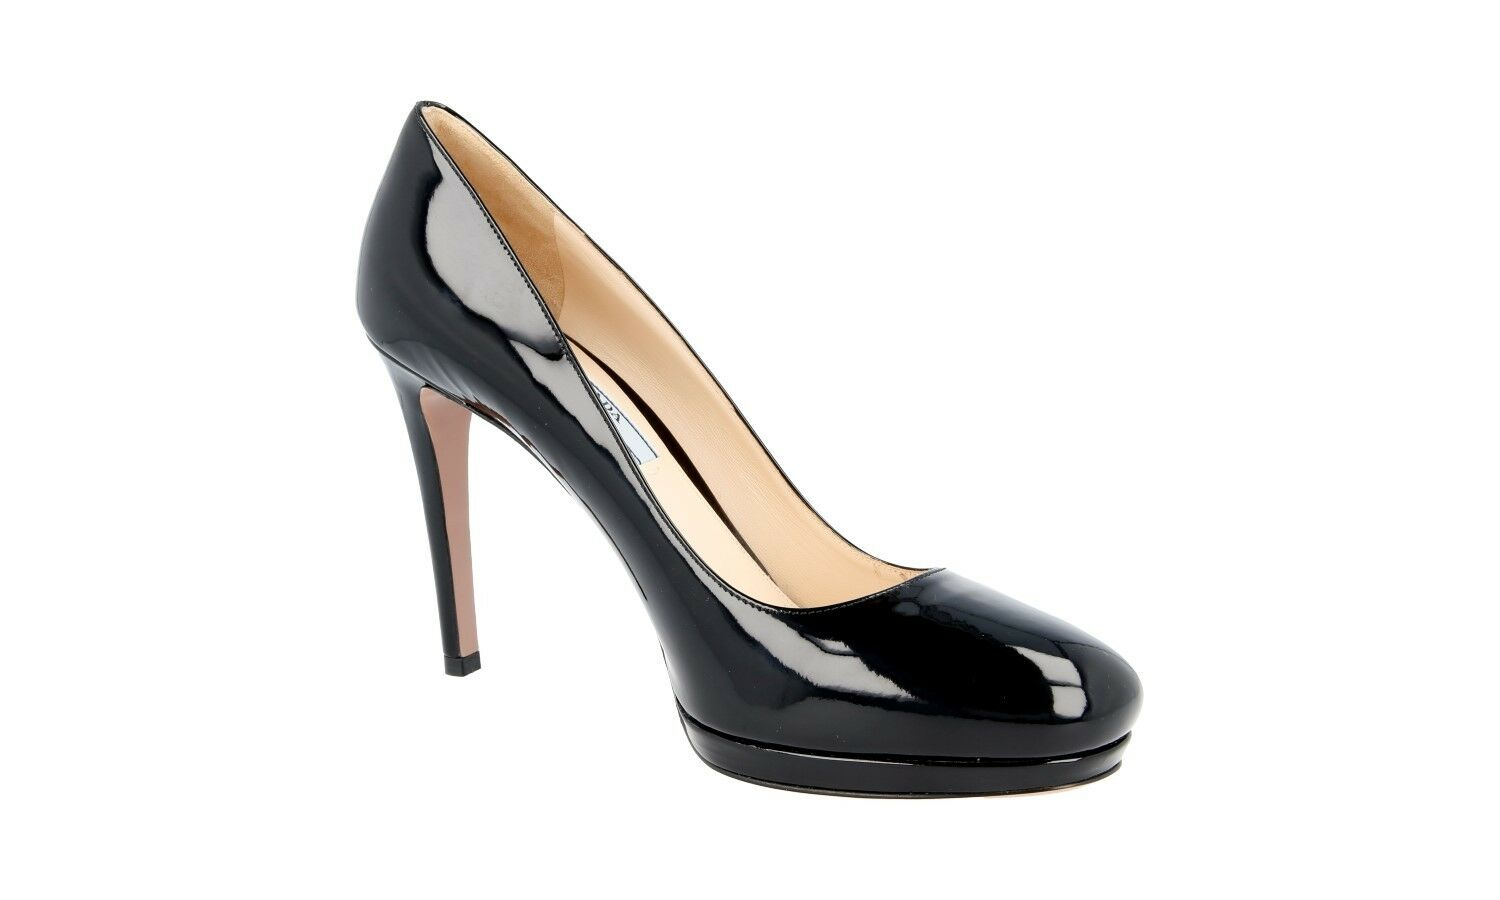 LUXUS PRADA PUMPS SCHUHE 1IP286 black LACKLEDER NEU NEW NEW NEW 37 37,5 701dd7